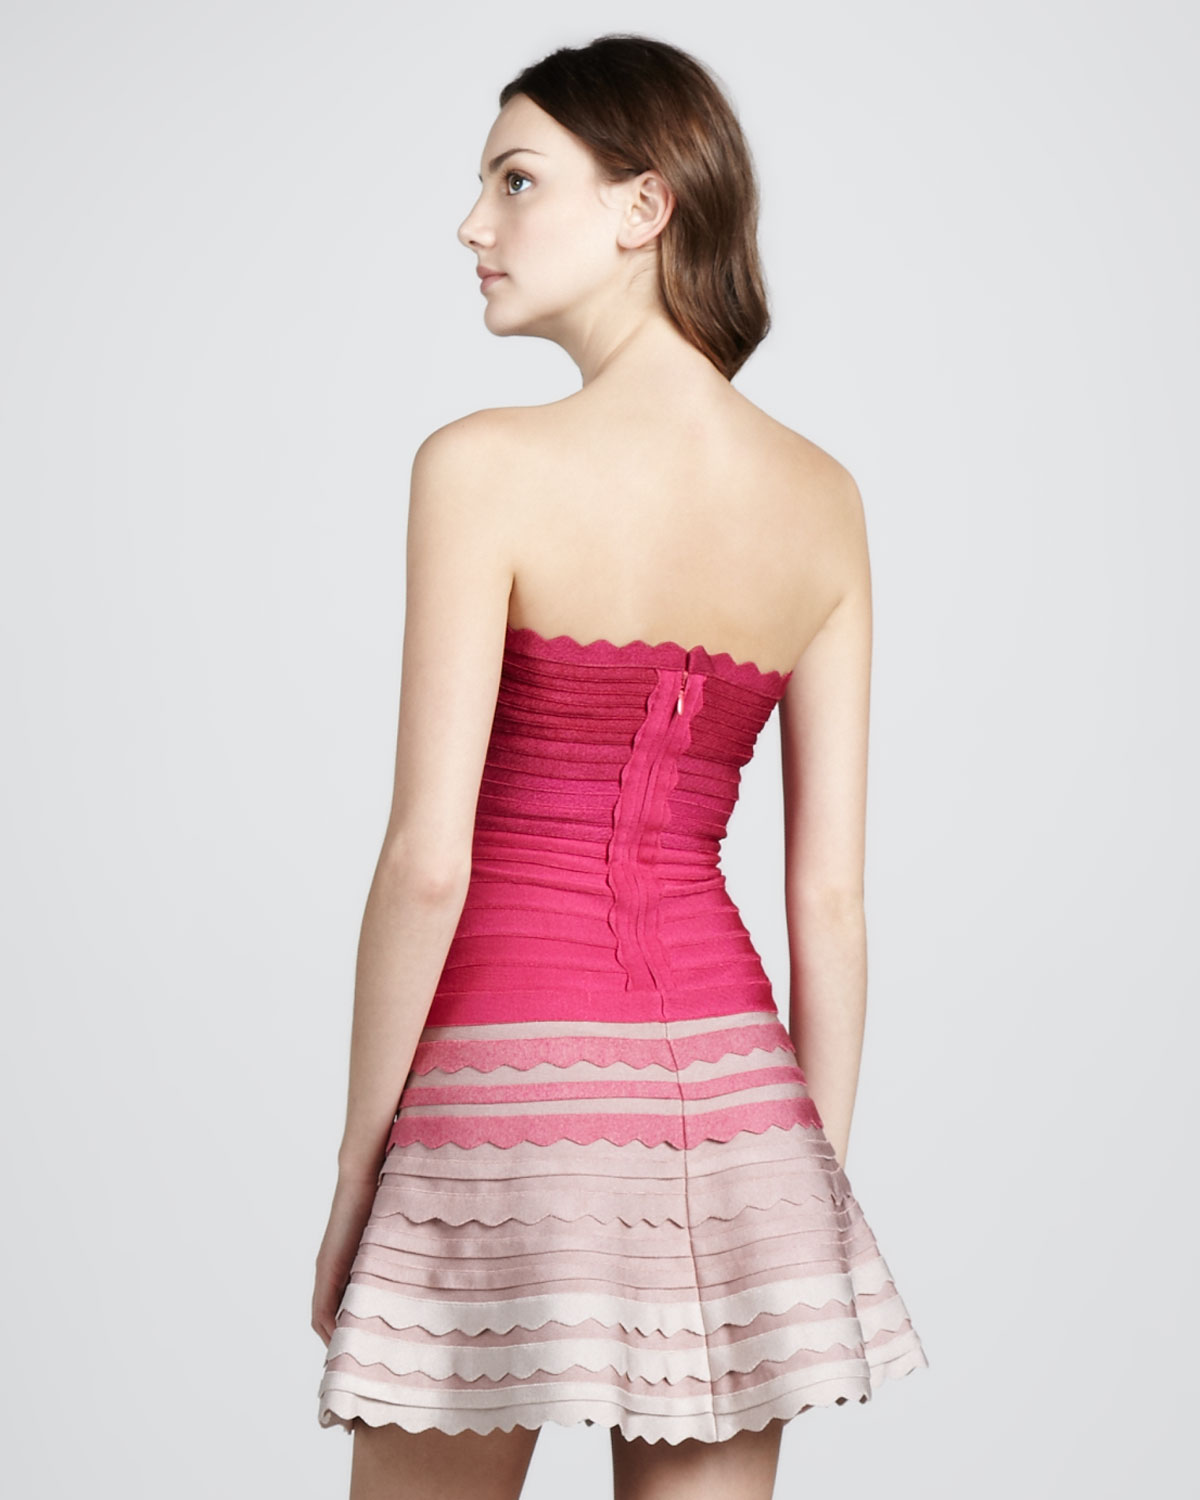 93e21a2c1dd4 Hervé Léger Ombre Scalloped Strapless Bandage Dress in Pink - Lyst